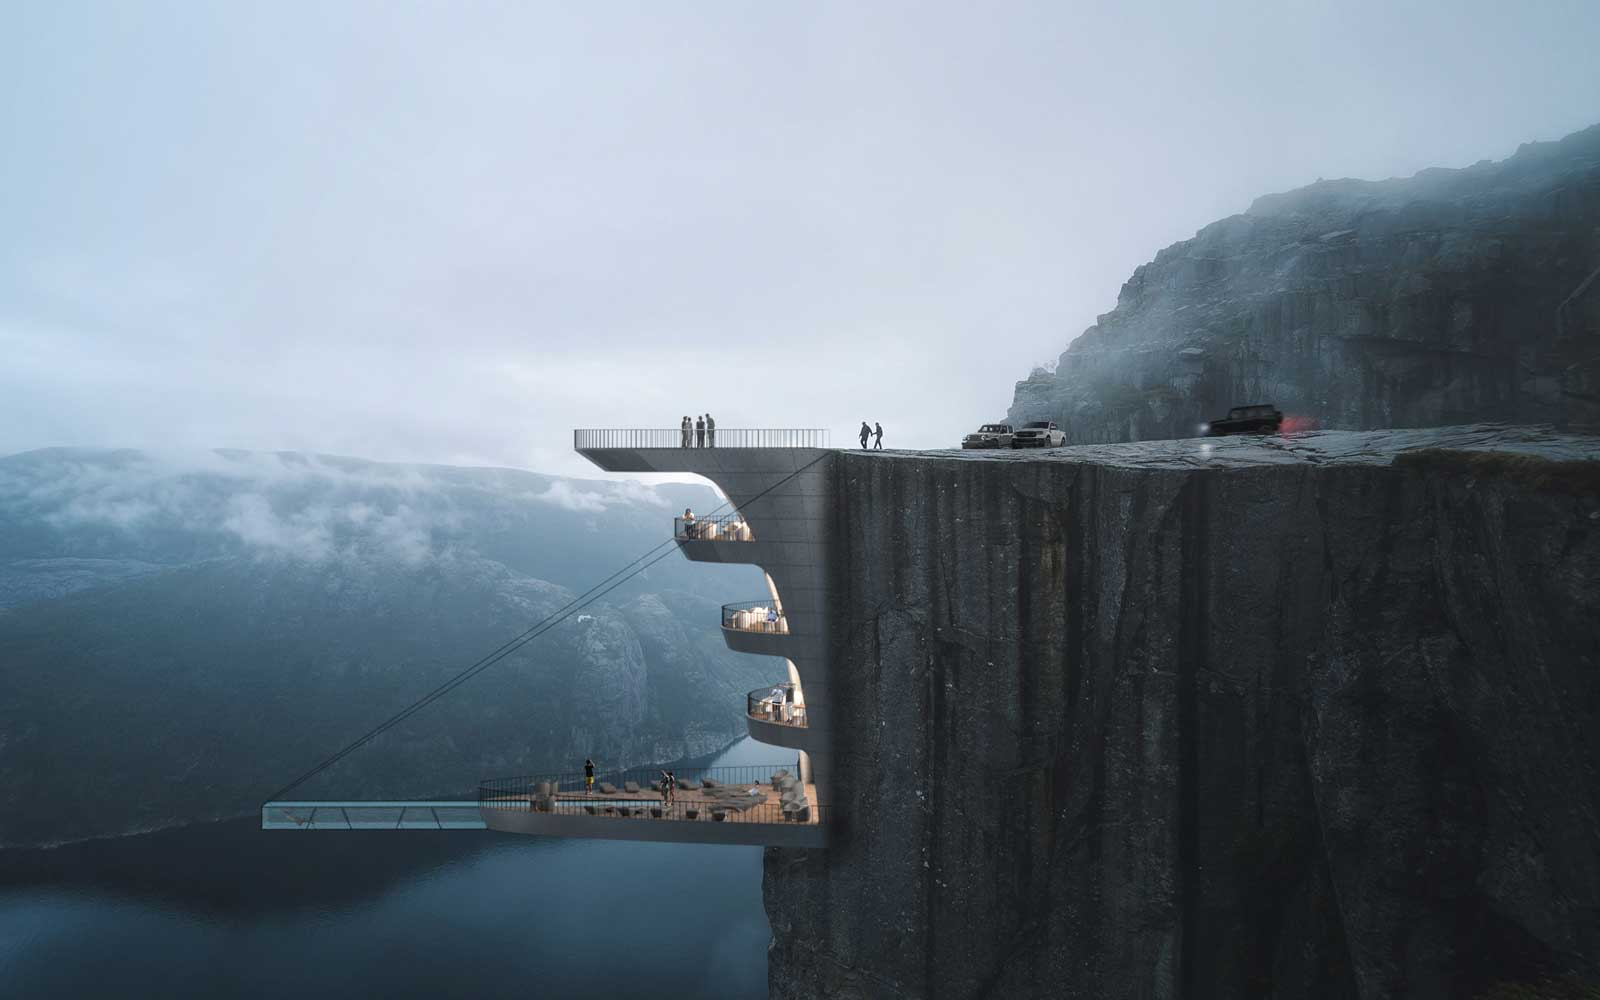 This Glass-bottom Pool Would Be Suspended Nearly 2,000 Feet Above a Fjord